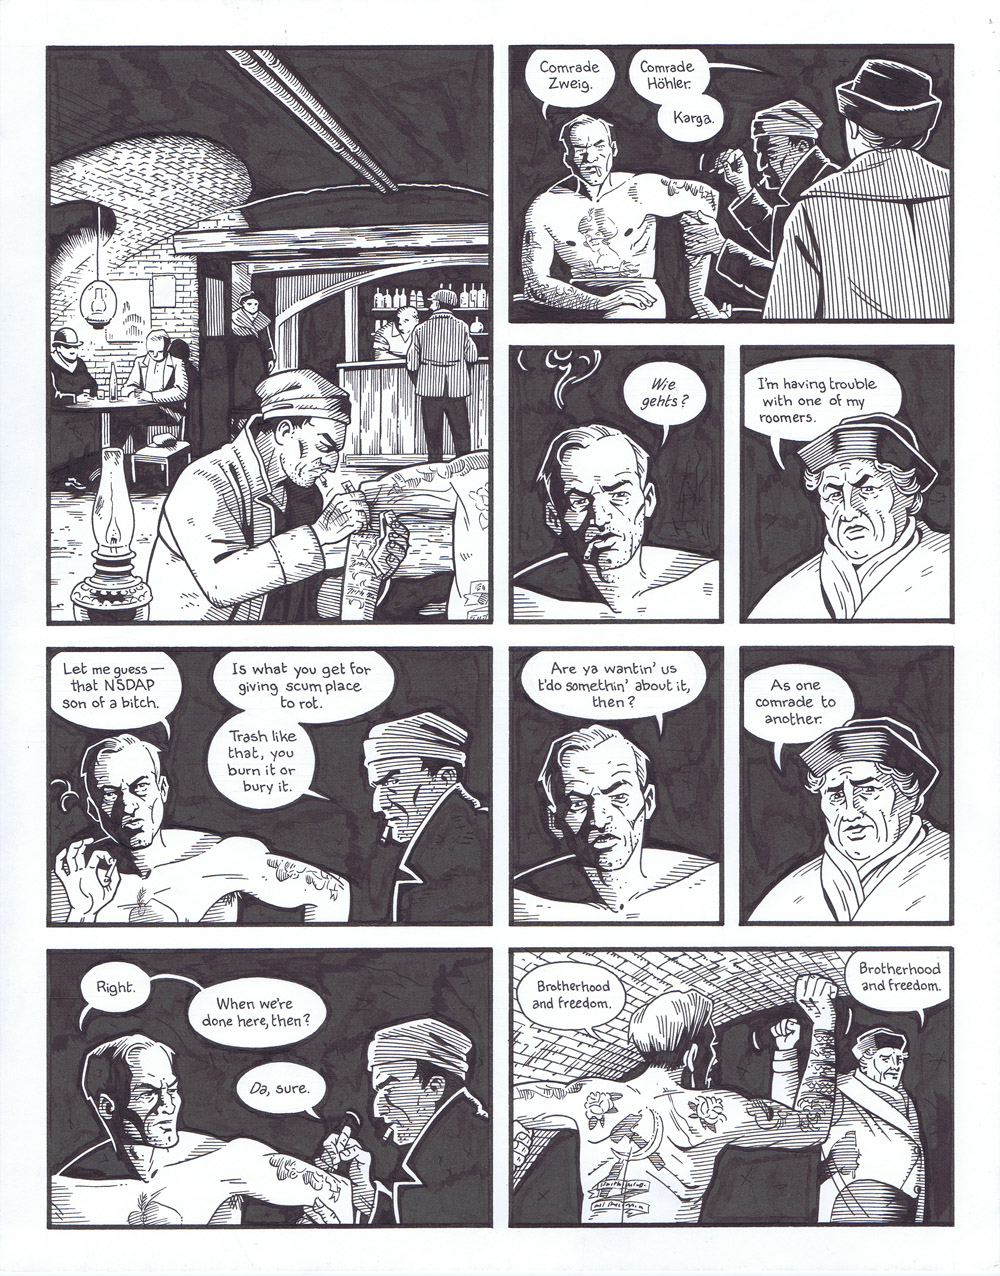 Berlin: Book 2 - page 139